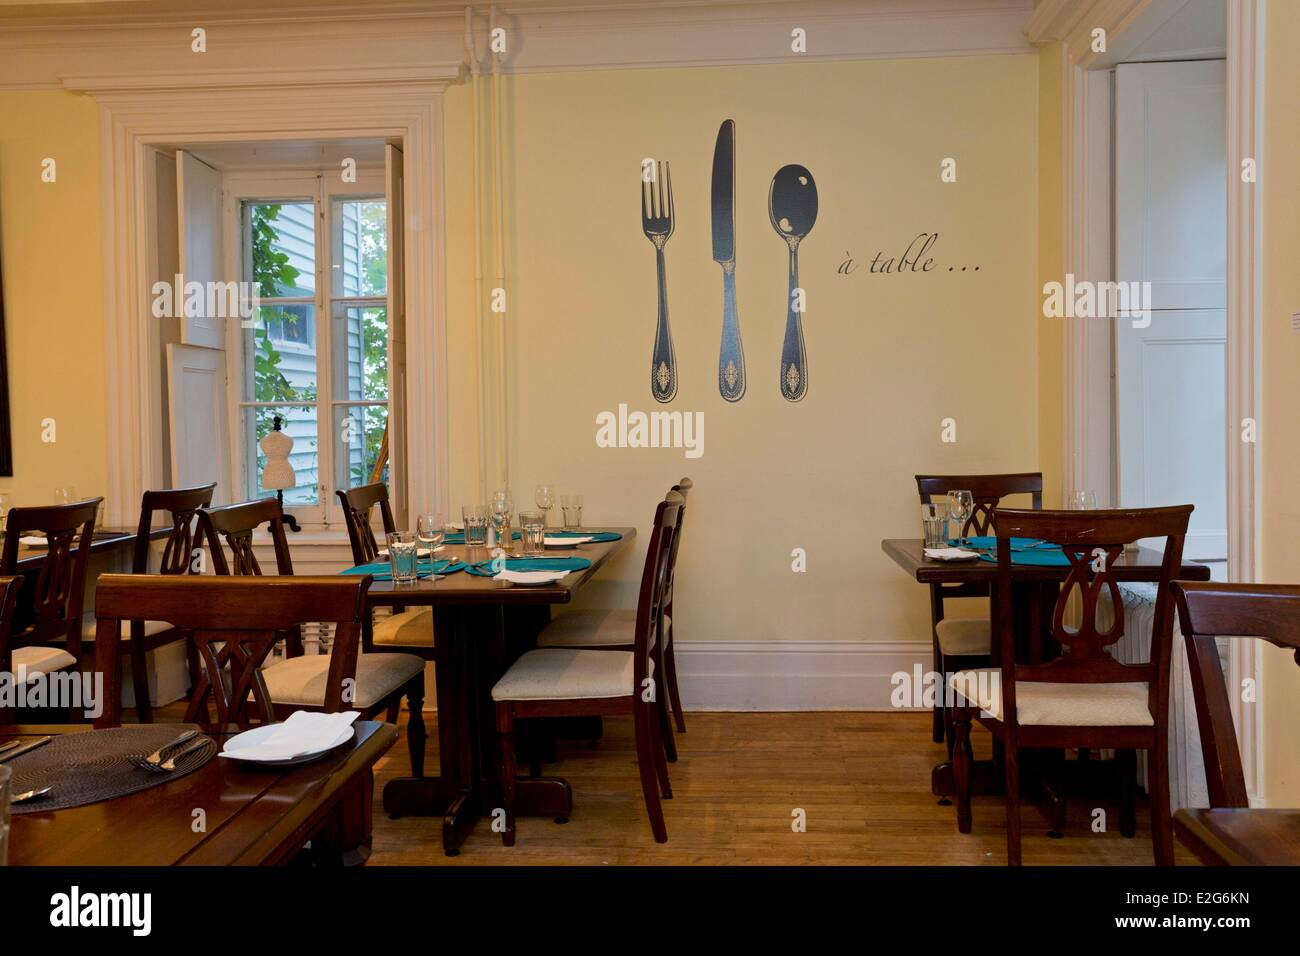 Canada Quebec province Chaudiere-Appalaches region Montmagny Hostel Chez Octave the restaurant - Stock Image